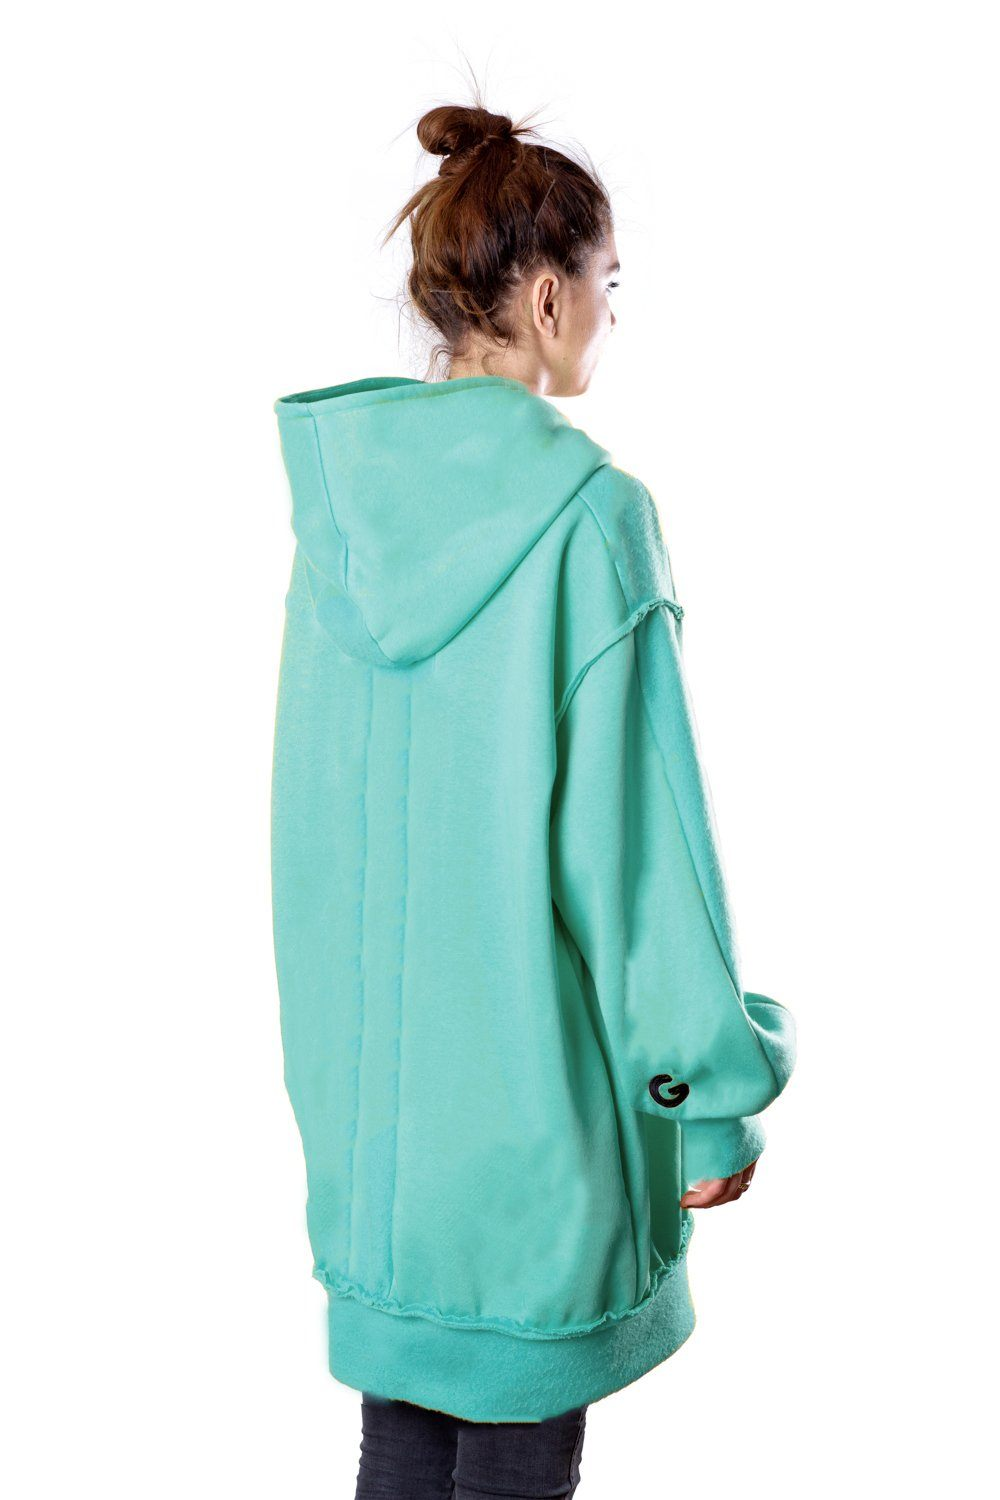 TheG Fresh Oversize Hoody Woman // mint